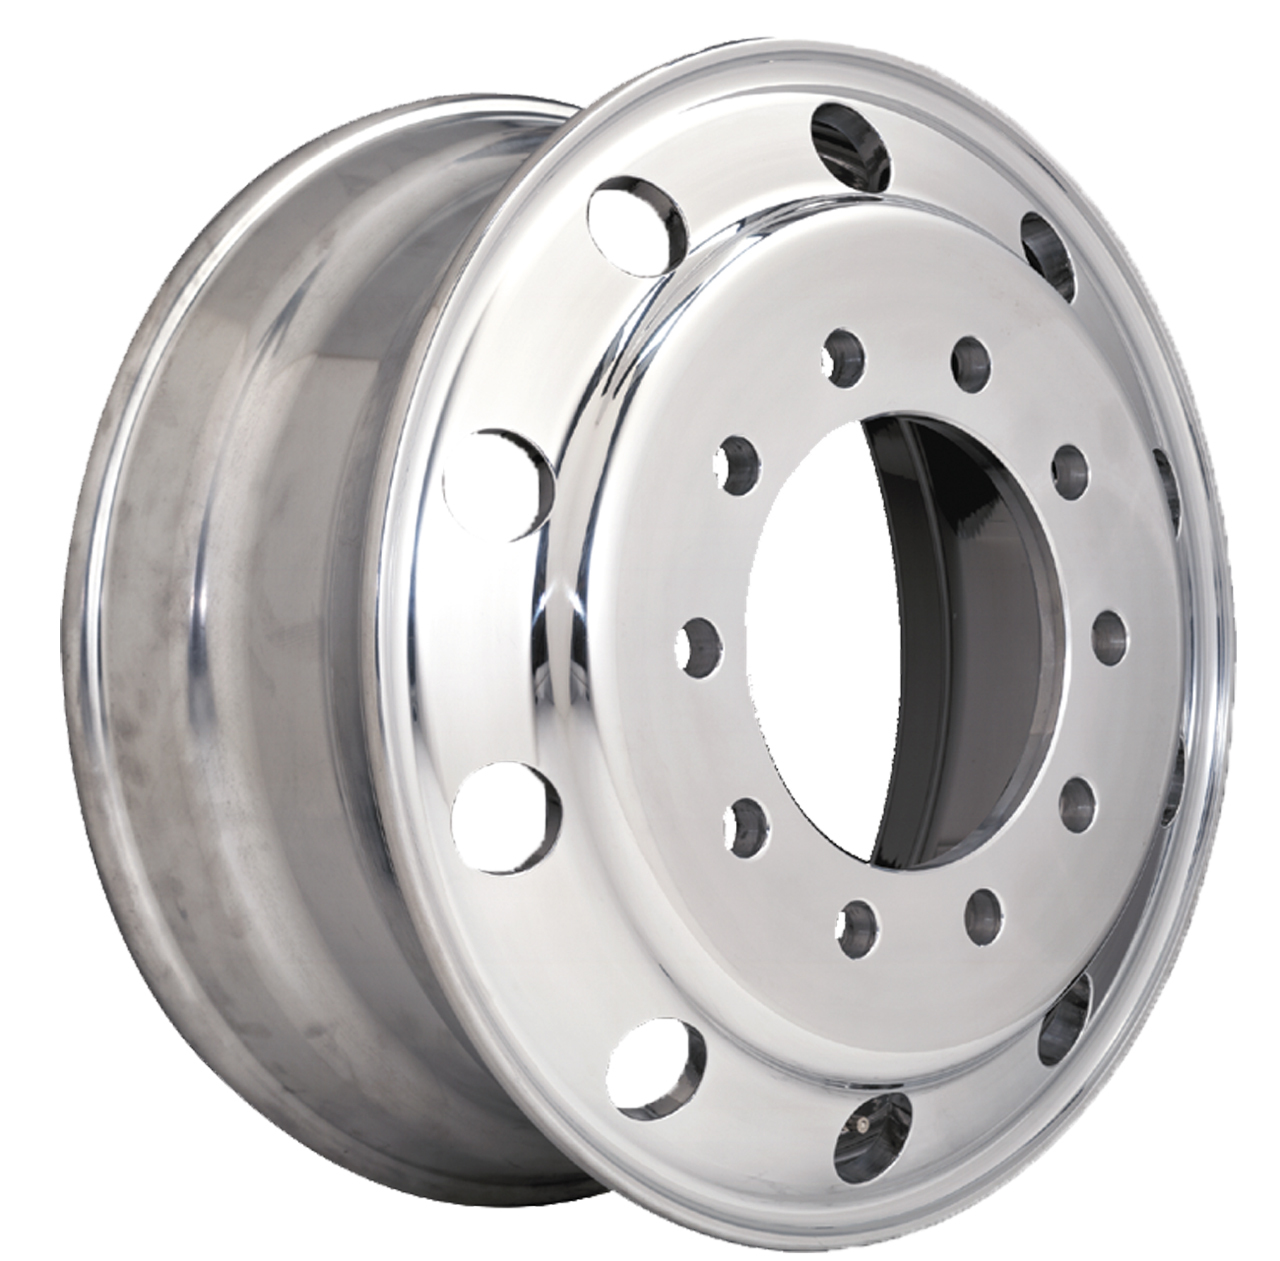 Accuride Introduces New Lightweight Aluminum Wheels At Hdaw 16 Business Wire